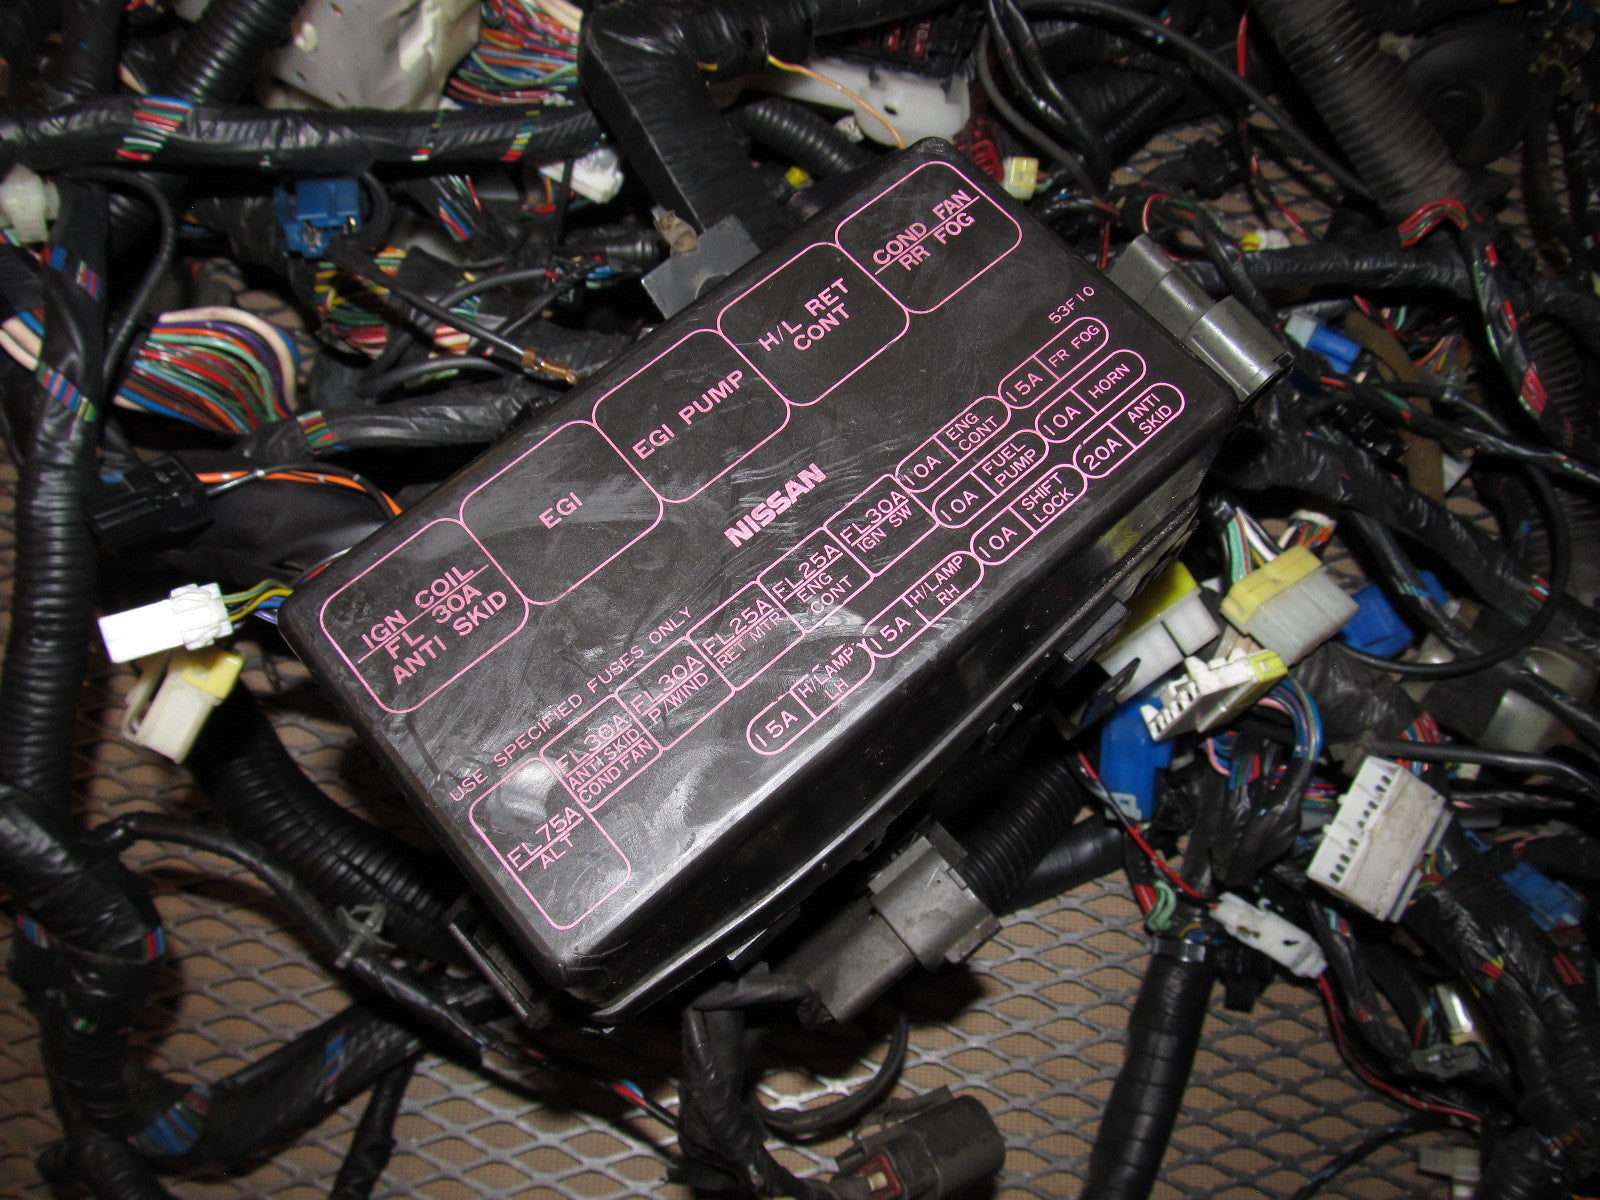 95 Nissan 240sx Engine Fuse Box Cover | Wiring Diagram on 95 240sx starter diagram, 95 240sx radio, 95 240sx interior, 95 240sx wiring, s14 fuse diagram, 1999 nissan altima engine diagram, 95 240sx dash lights, 95 240sx fuel pump,